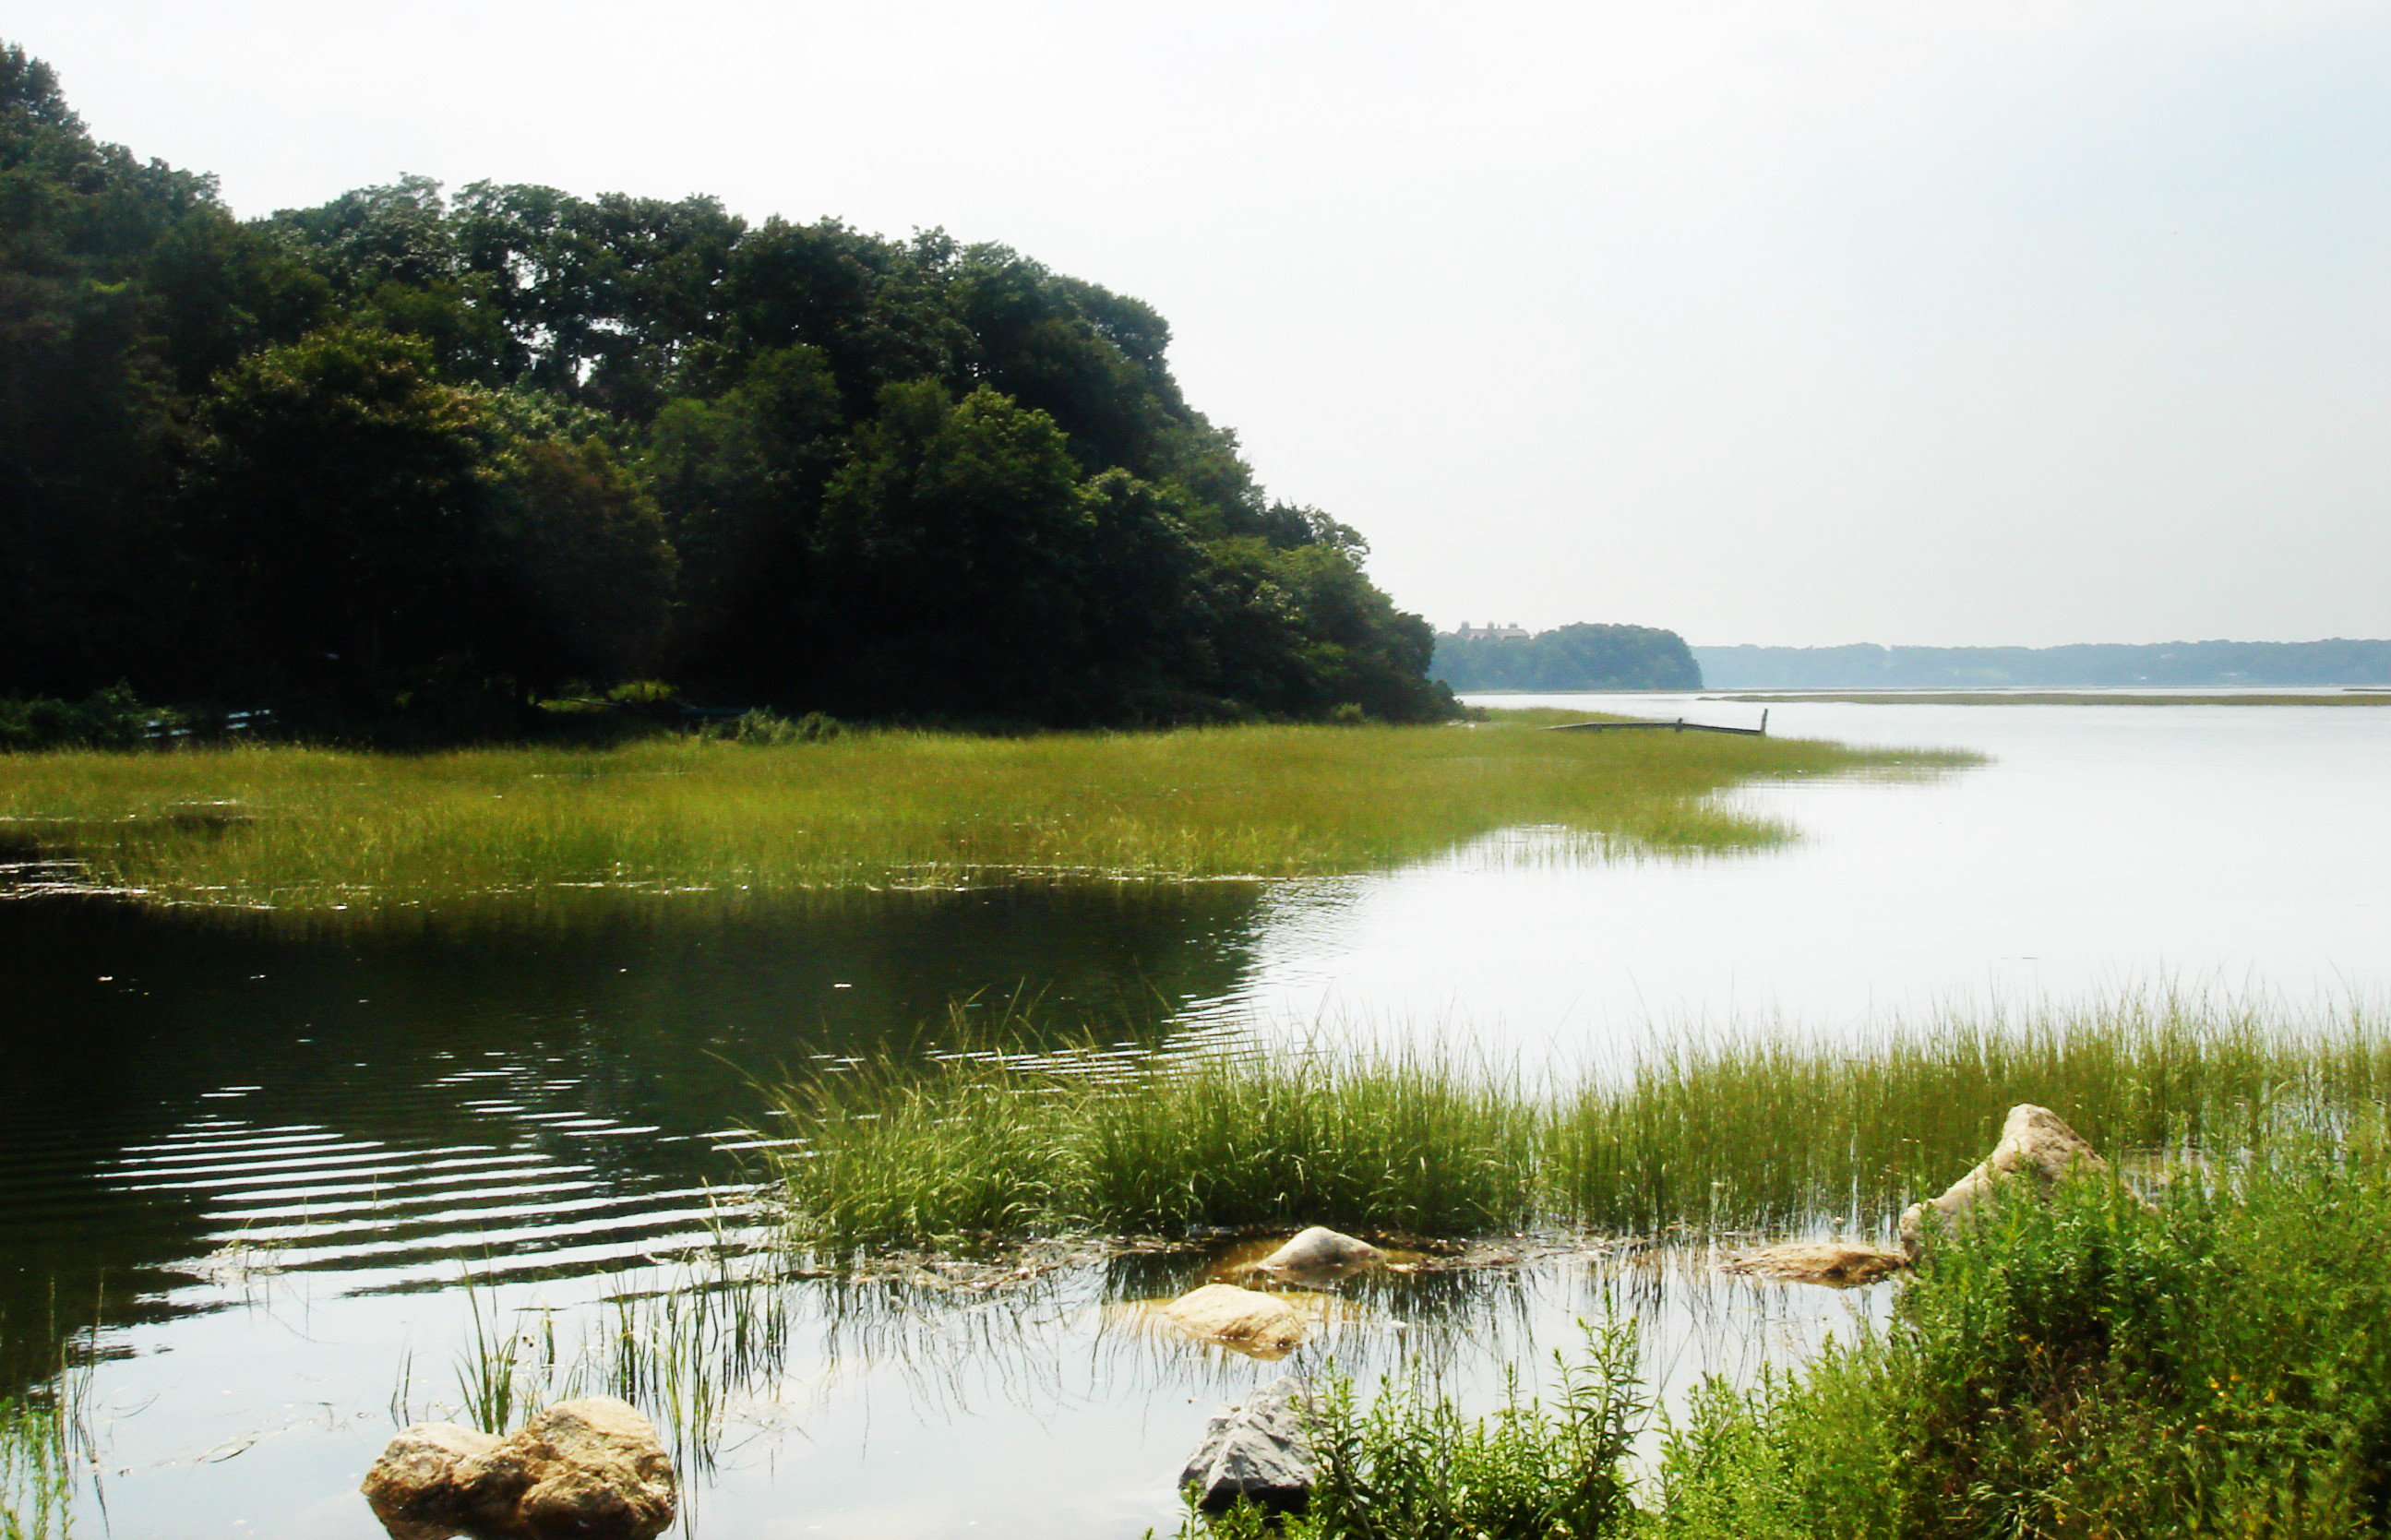 Natural wonders Nature Outdoor Activities Outdoors Waterfront water sky grass habitat Lake River natural environment shore loch reservoir pond wetland marsh surrounded